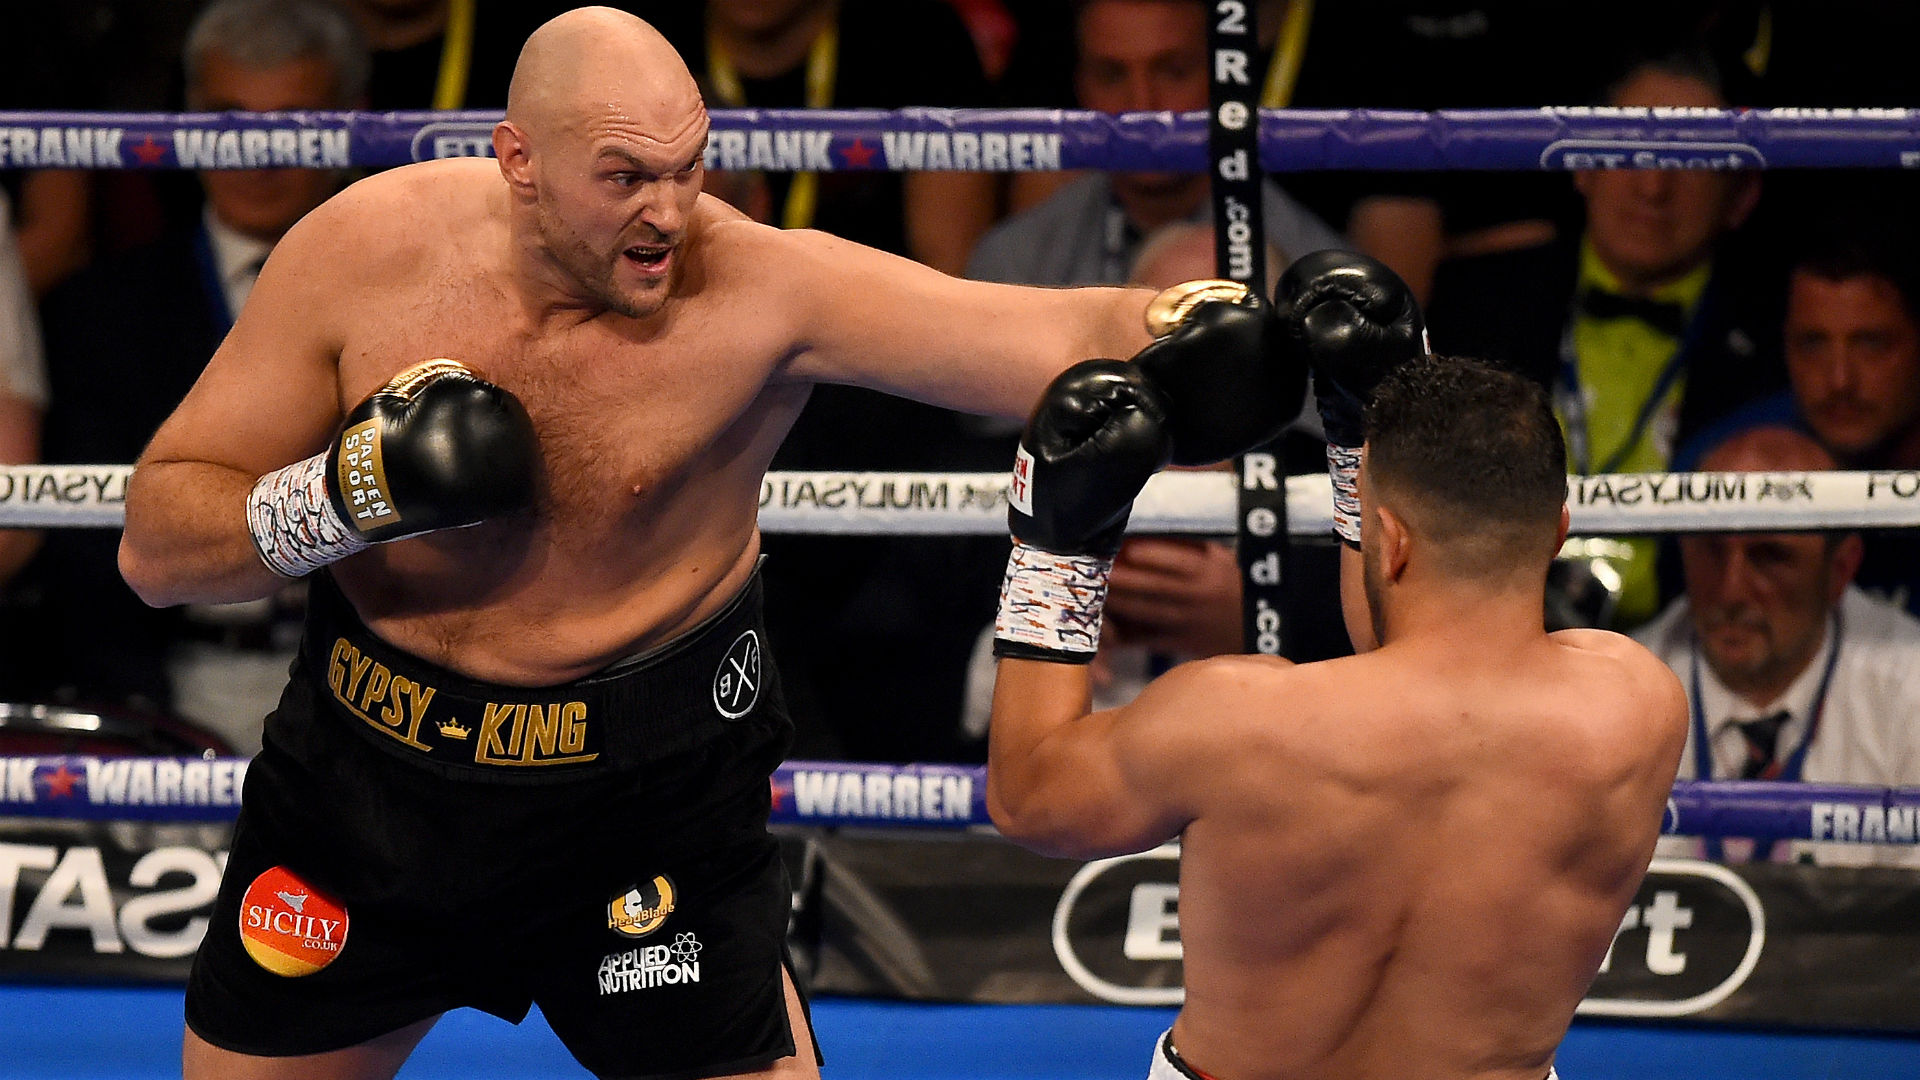 Tyson Fury eyeing title fight before end of 2018